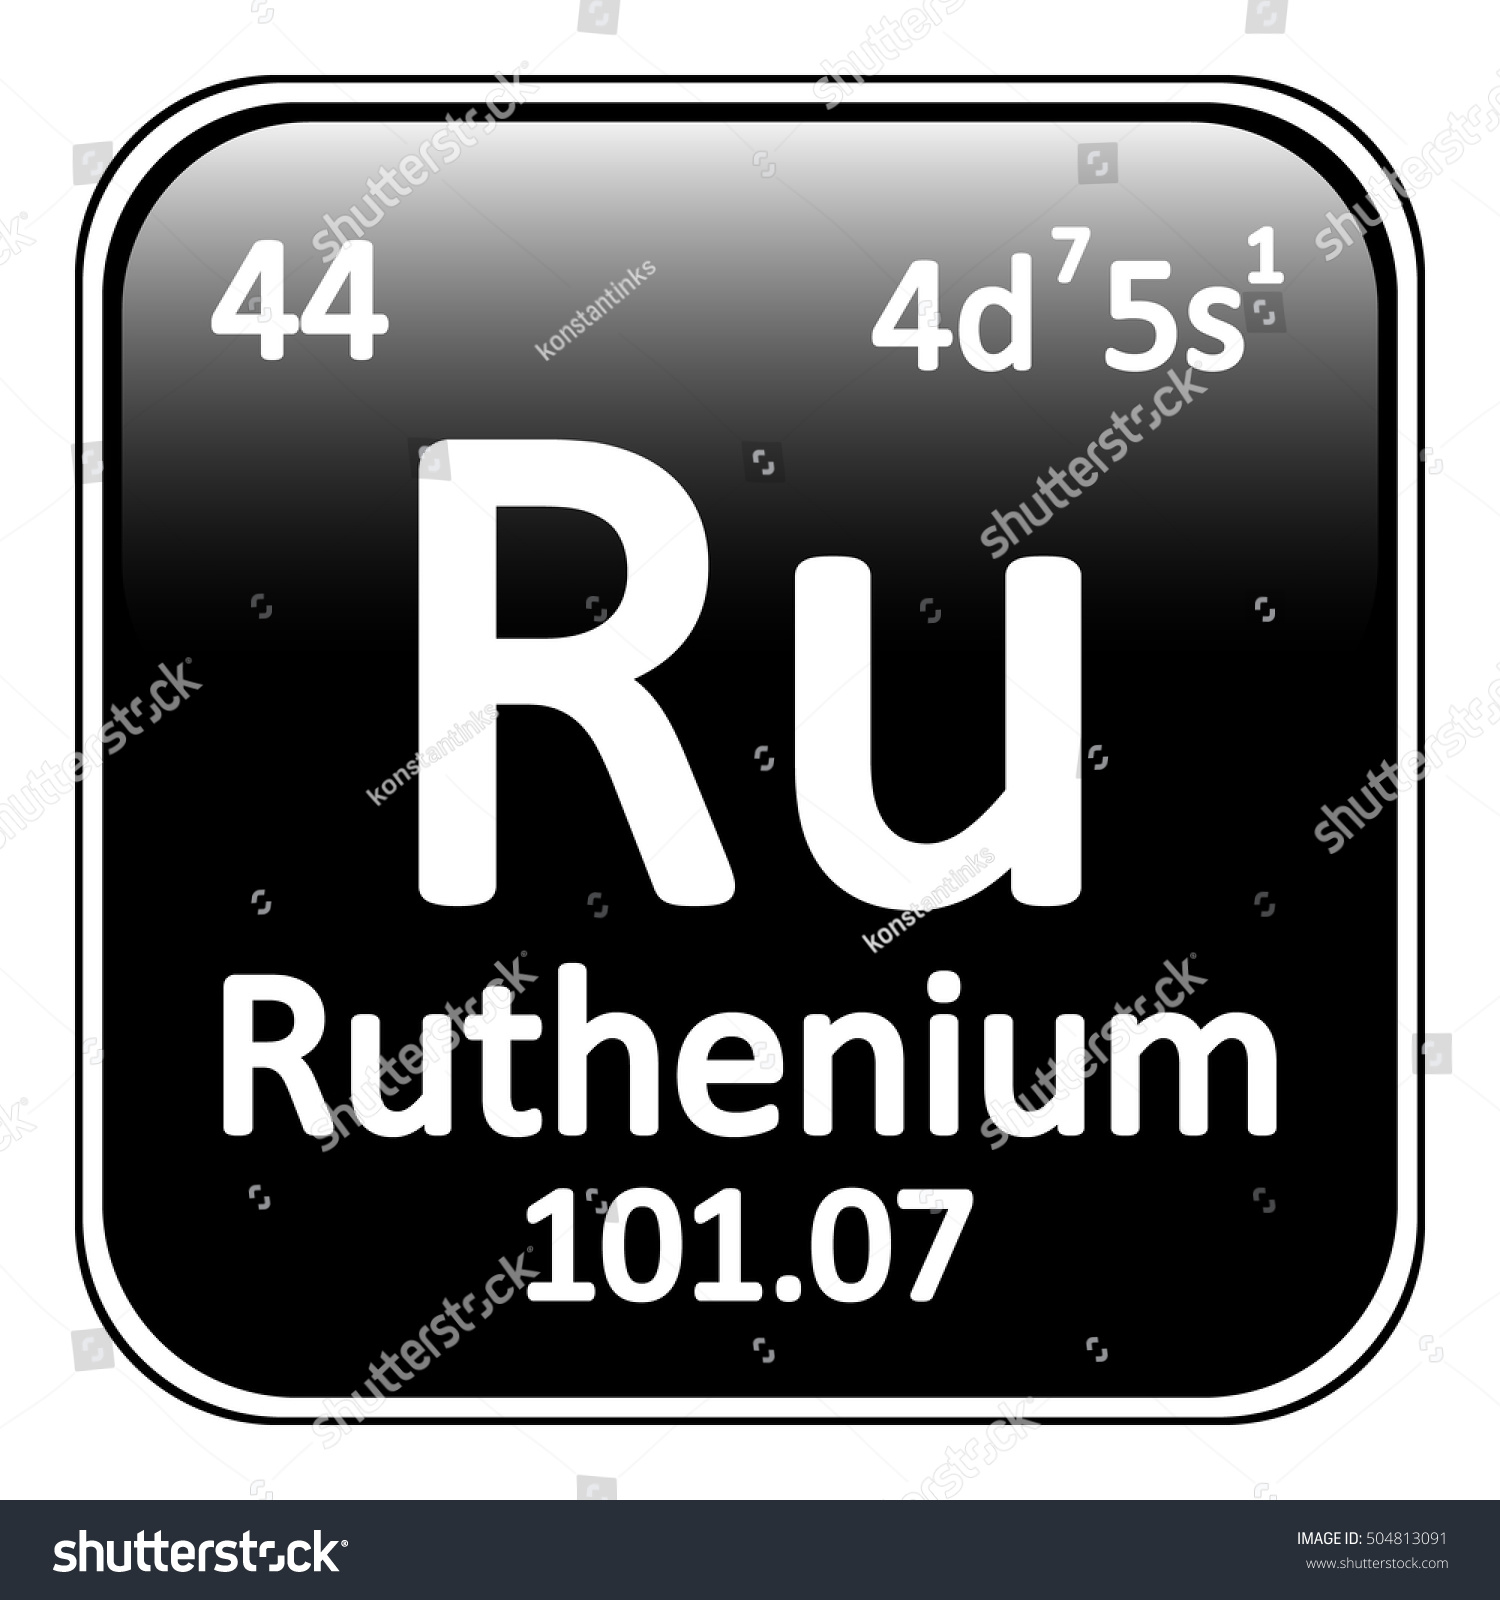 Periodic table element ruthenium icon on stock vector 504813091 periodic table element ruthenium icon on white background vector illustration gamestrikefo Choice Image